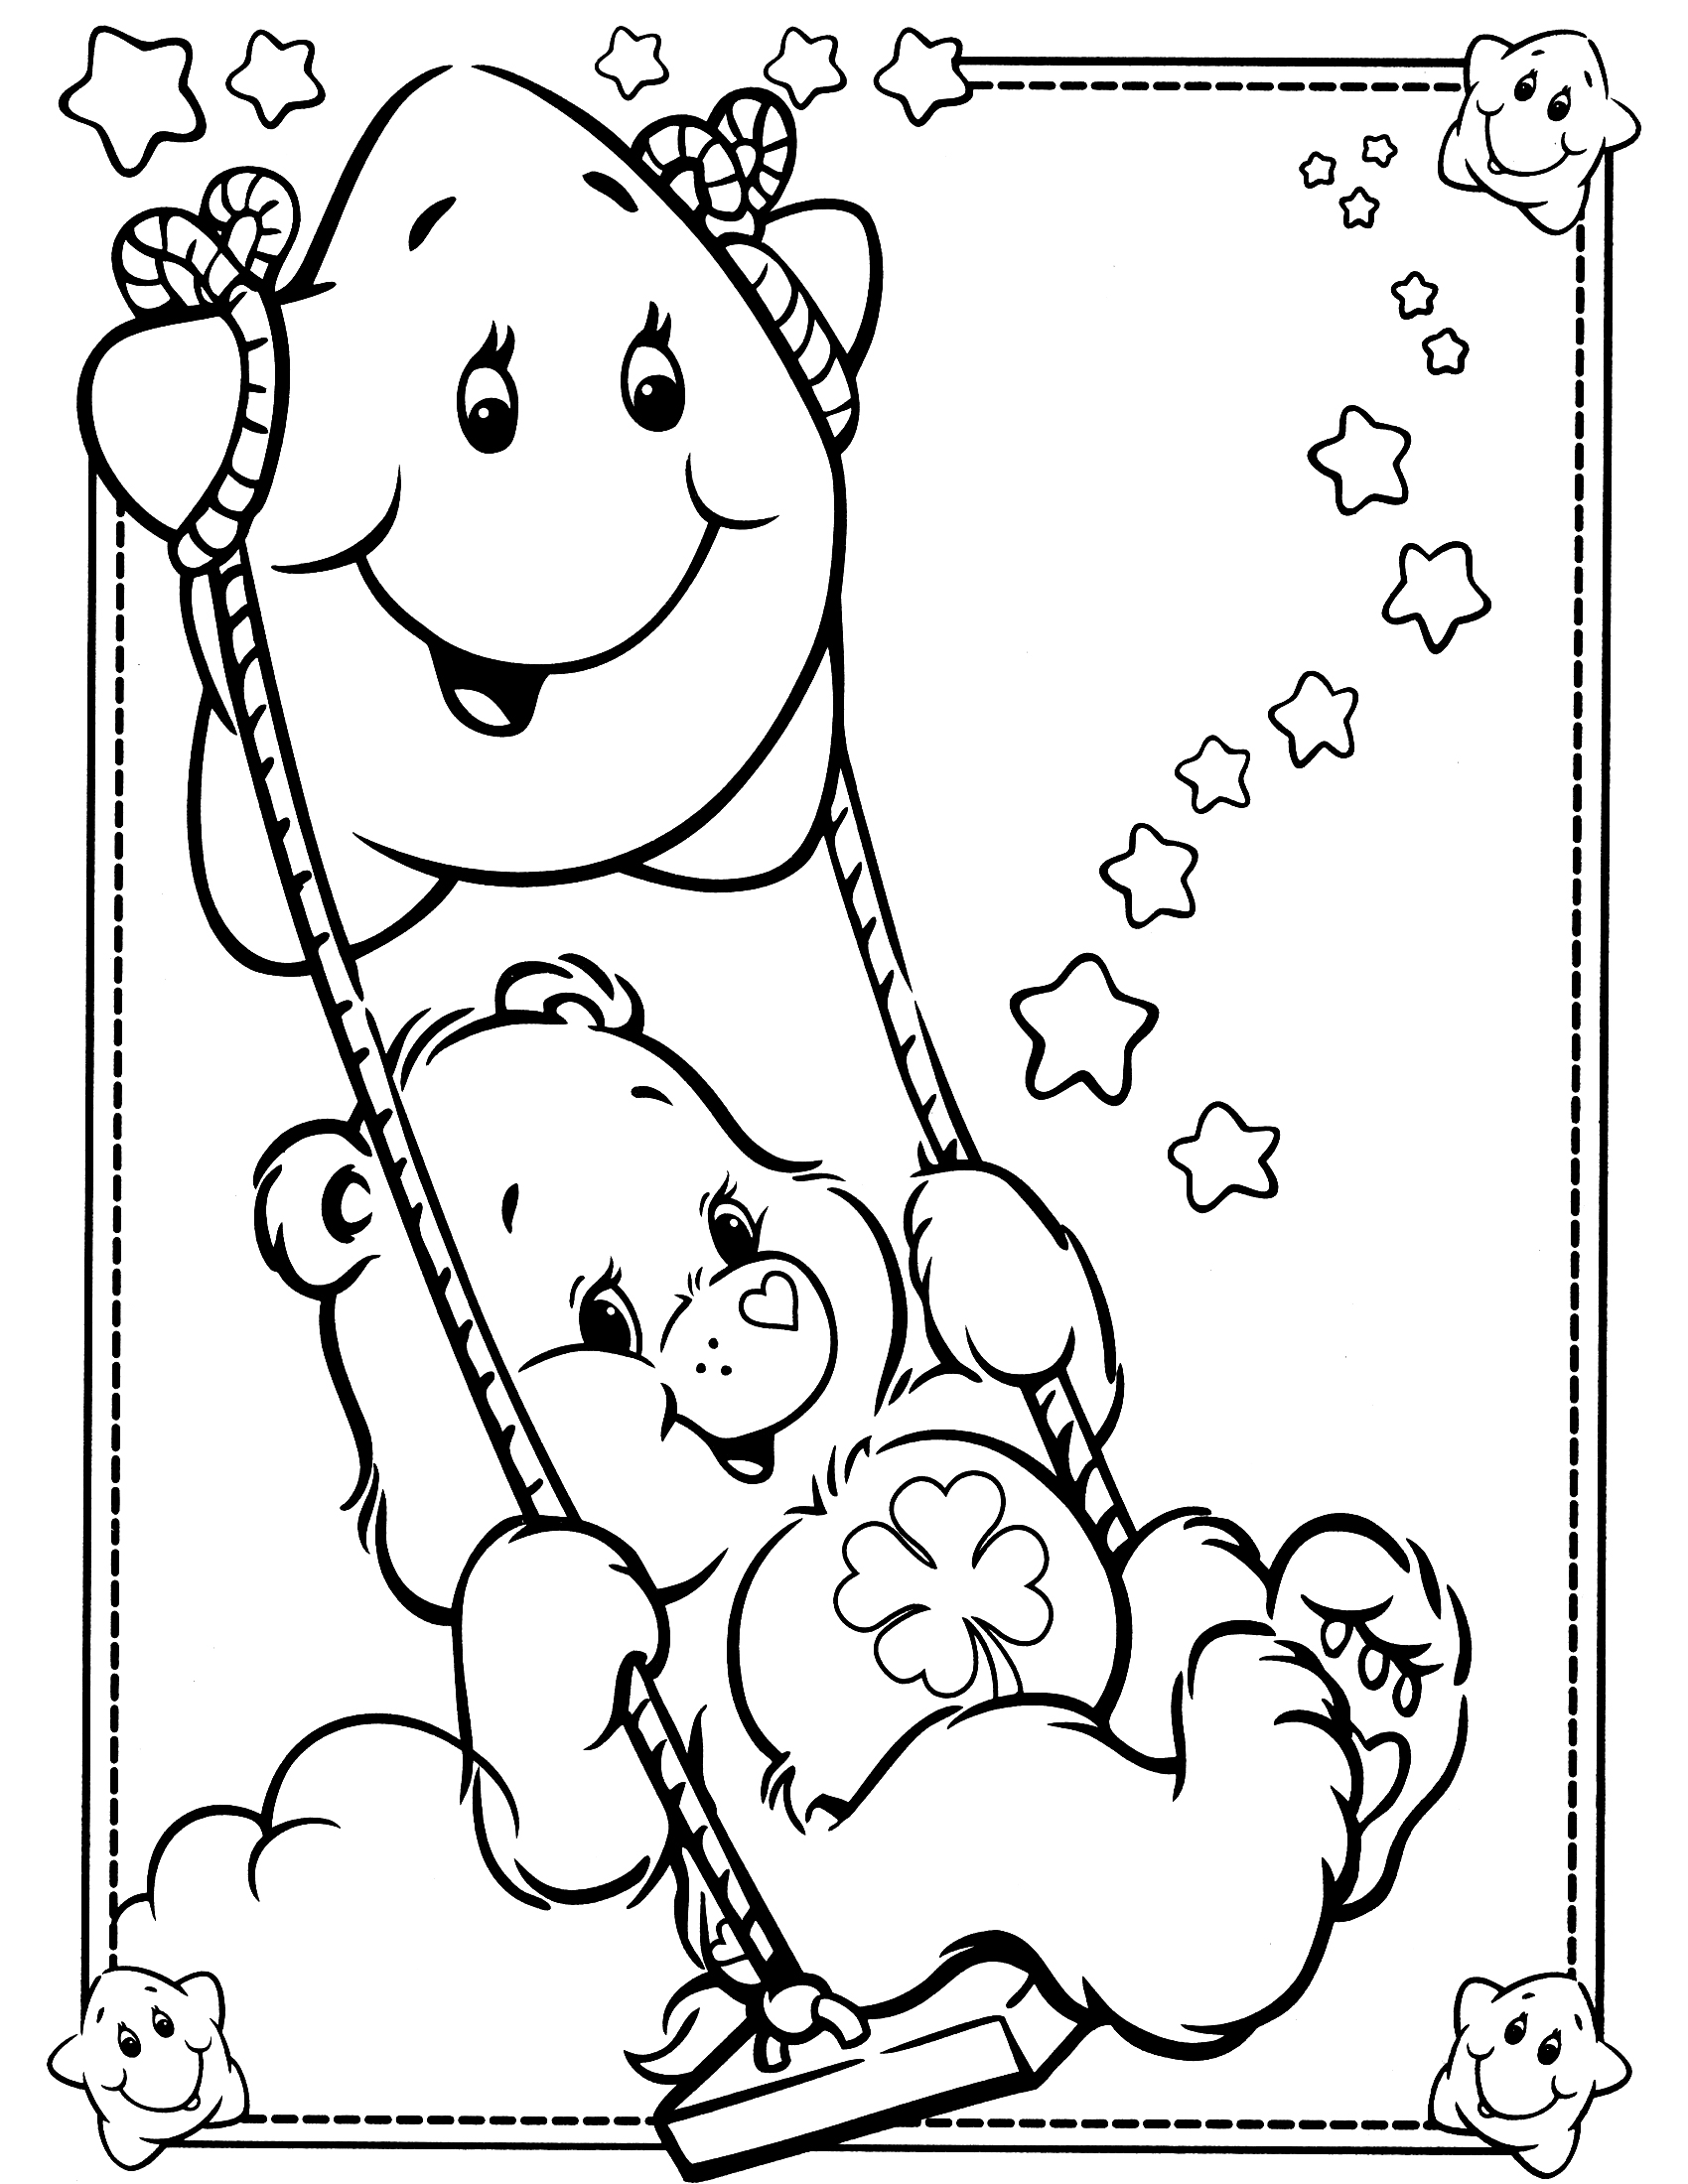 Care Bear Coloring Pages At Getdrawings Com Free For Personal Use